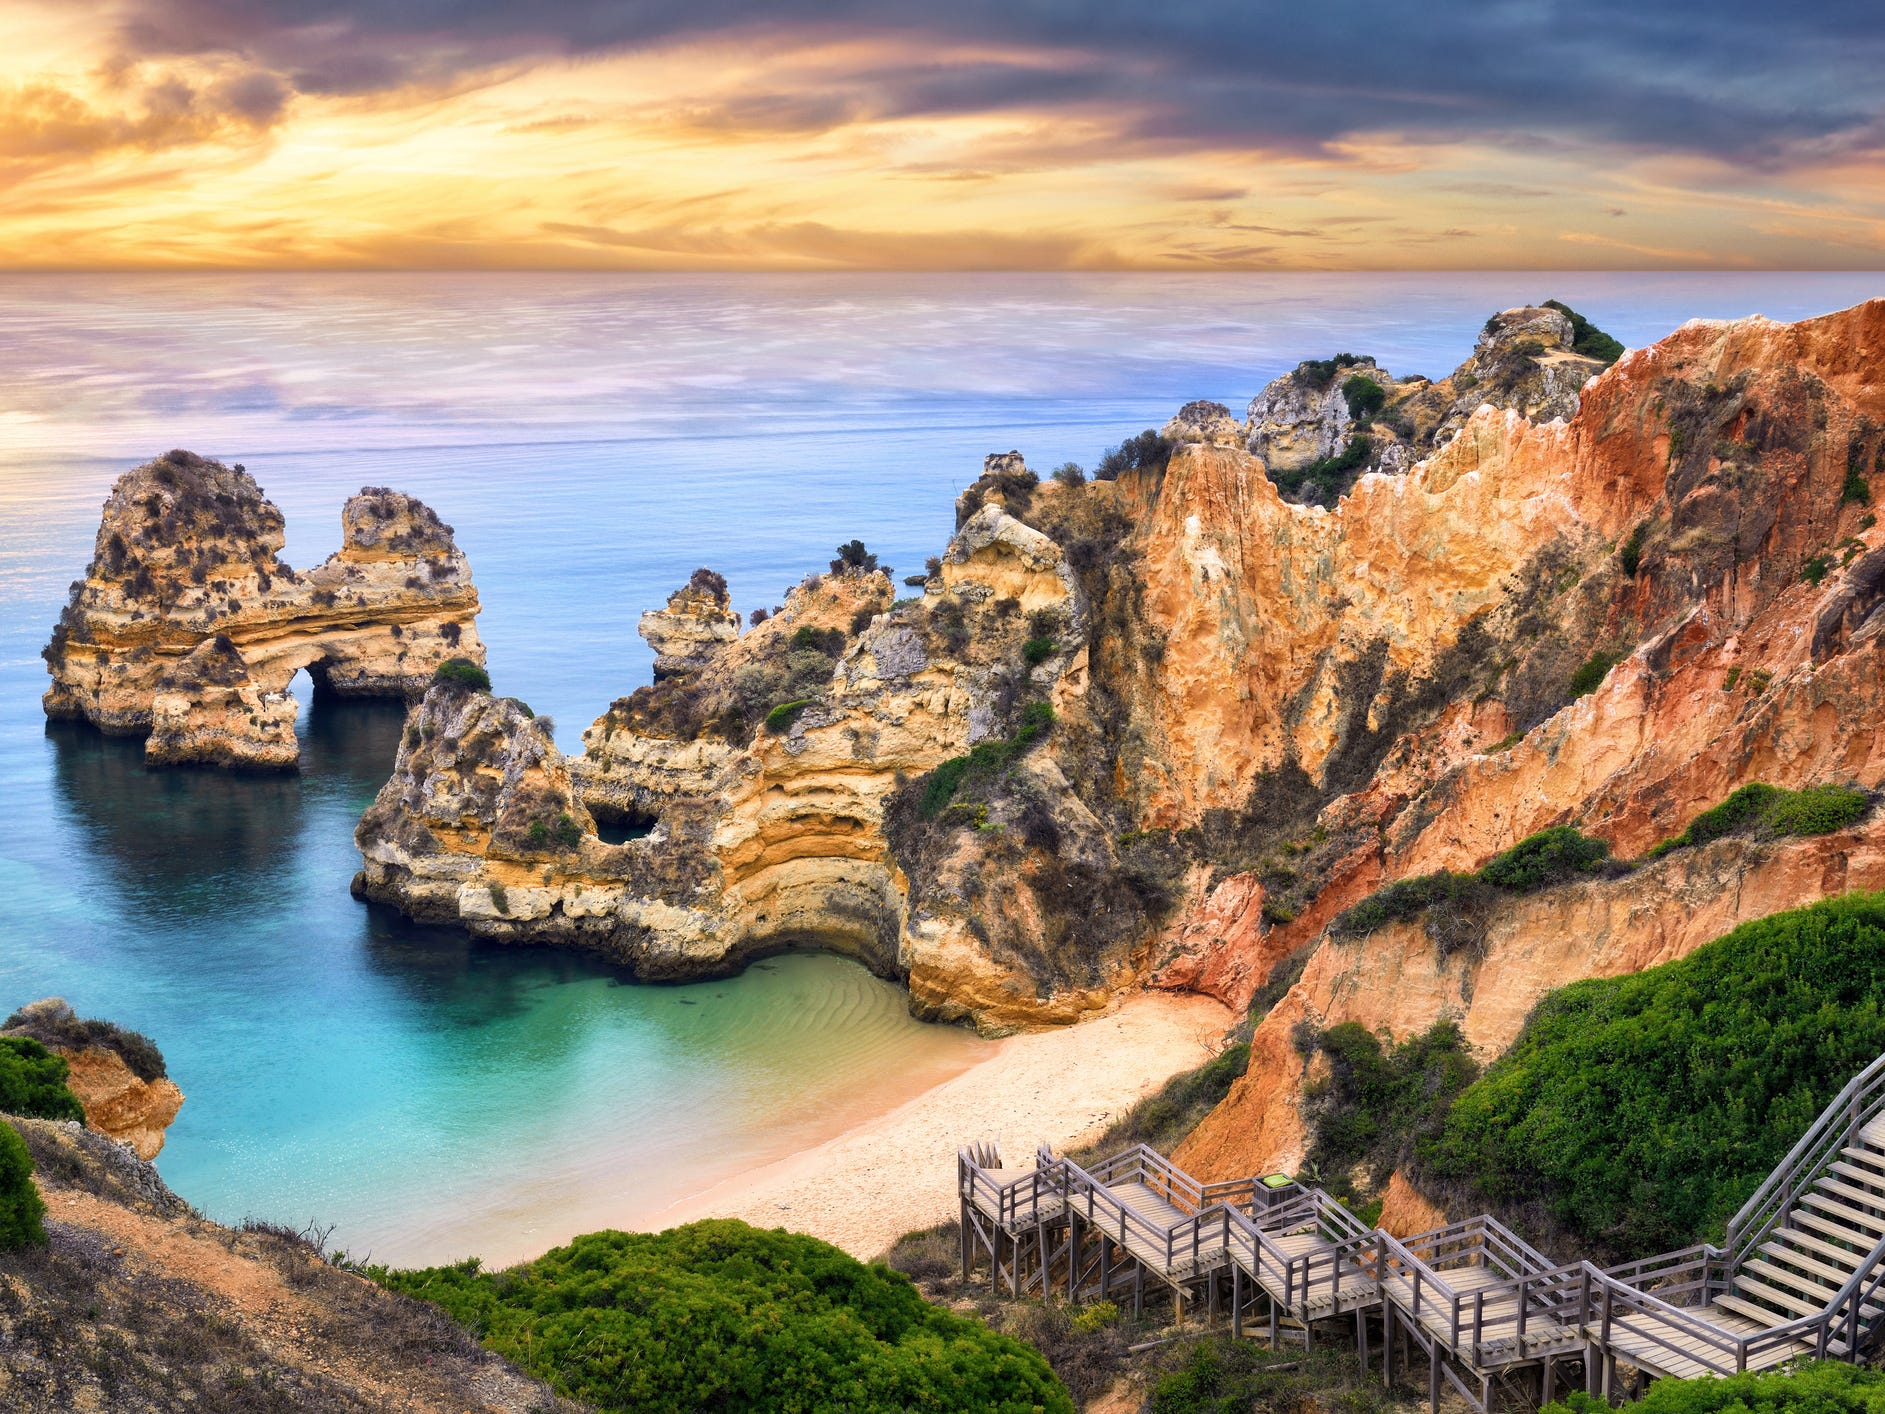 Camilo Beach, Lagos, Portugal: Some of Europe's best beaches are in Portugal's Algarve Region, where white-sand beaches, rocky cliffs and brightly colored fishing towns echo Italy's Amalfi Coast. In the beach town of Lagos, descend the wooden steps to Camilo Beach (or Praia Camilo) for a day of lounging on soft sand and exploring stone arches in the sea cliffs. Switch into adventure mode by booking a boat tour of the bay that can bring you into the nearby grottoes and sea caves that drain at low tide.